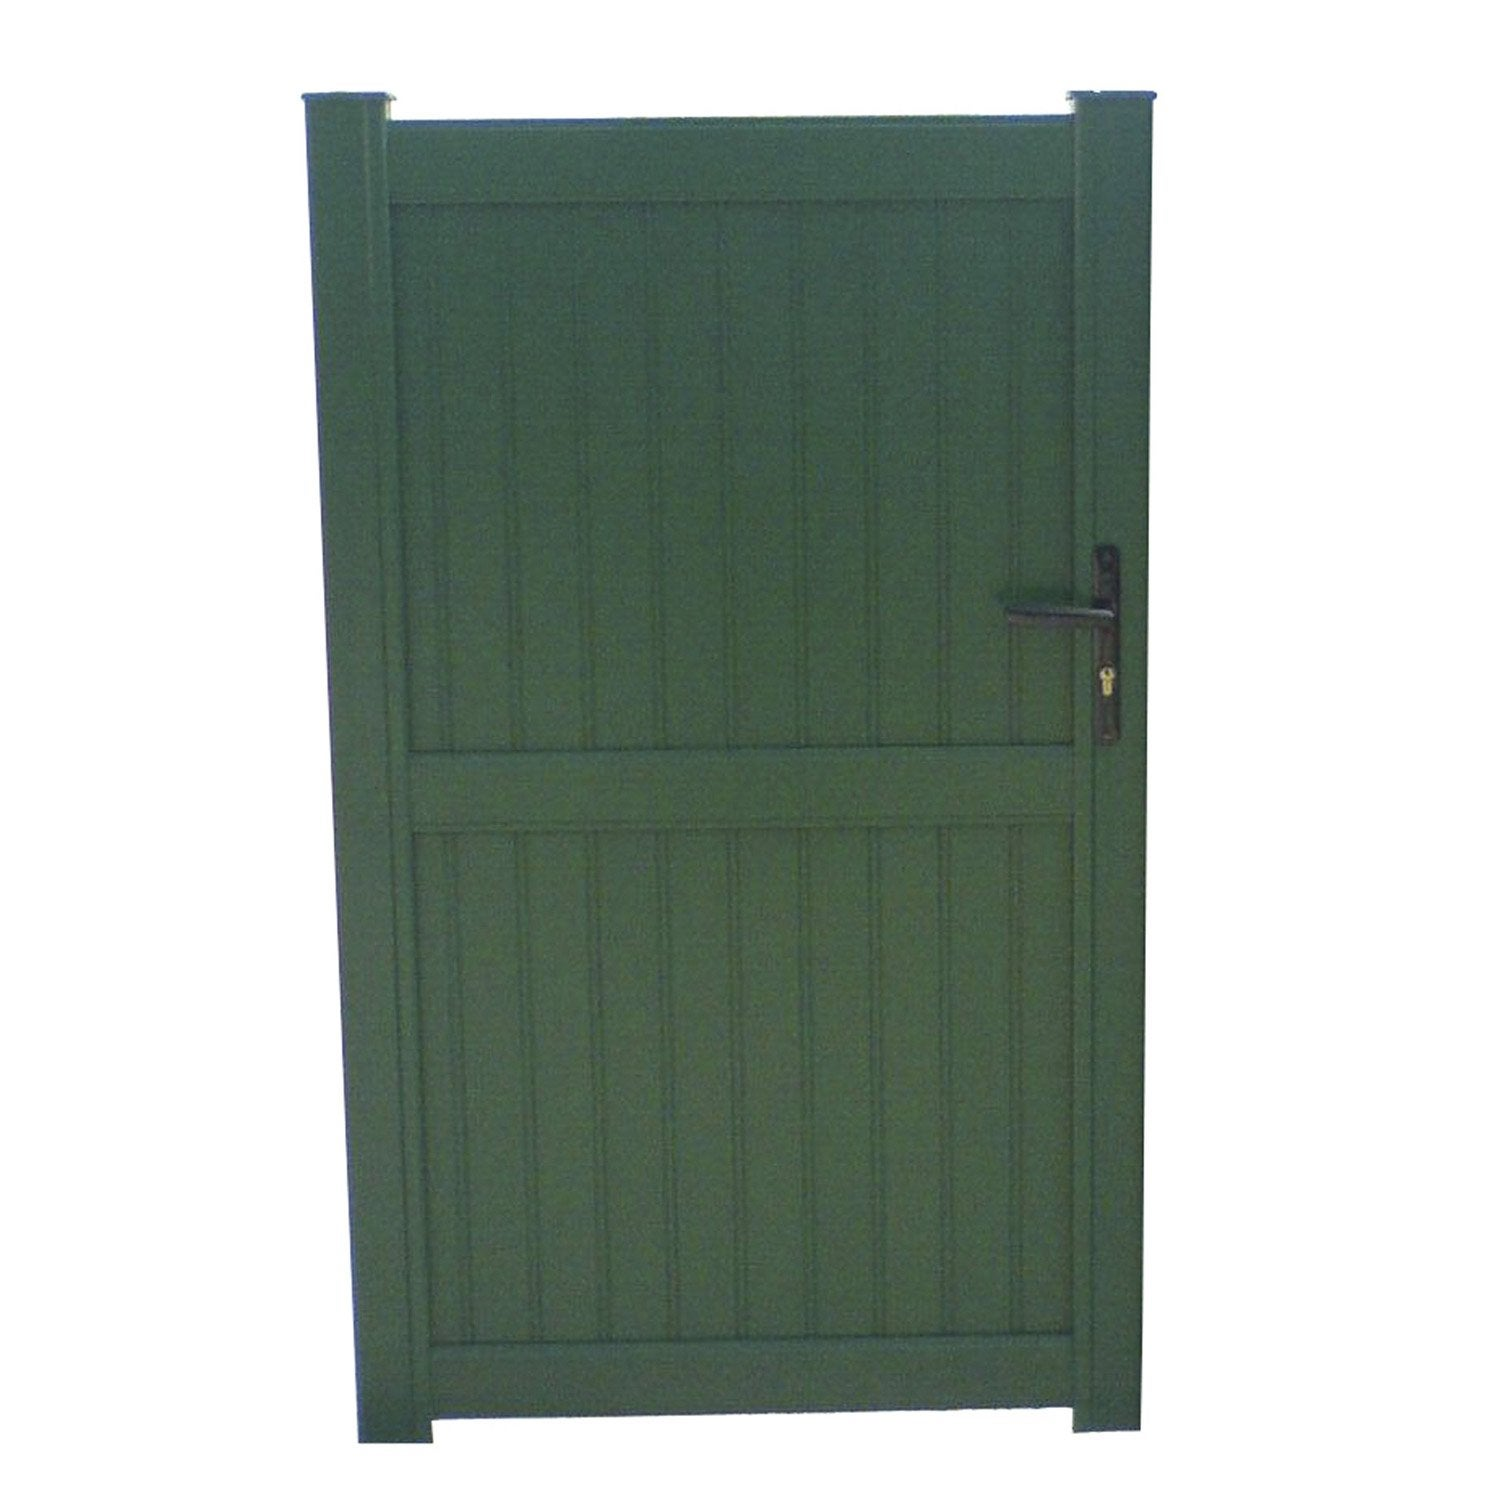 Portillon battant en aluminium noyal x cm for Portillon de jardin largeur 1m20